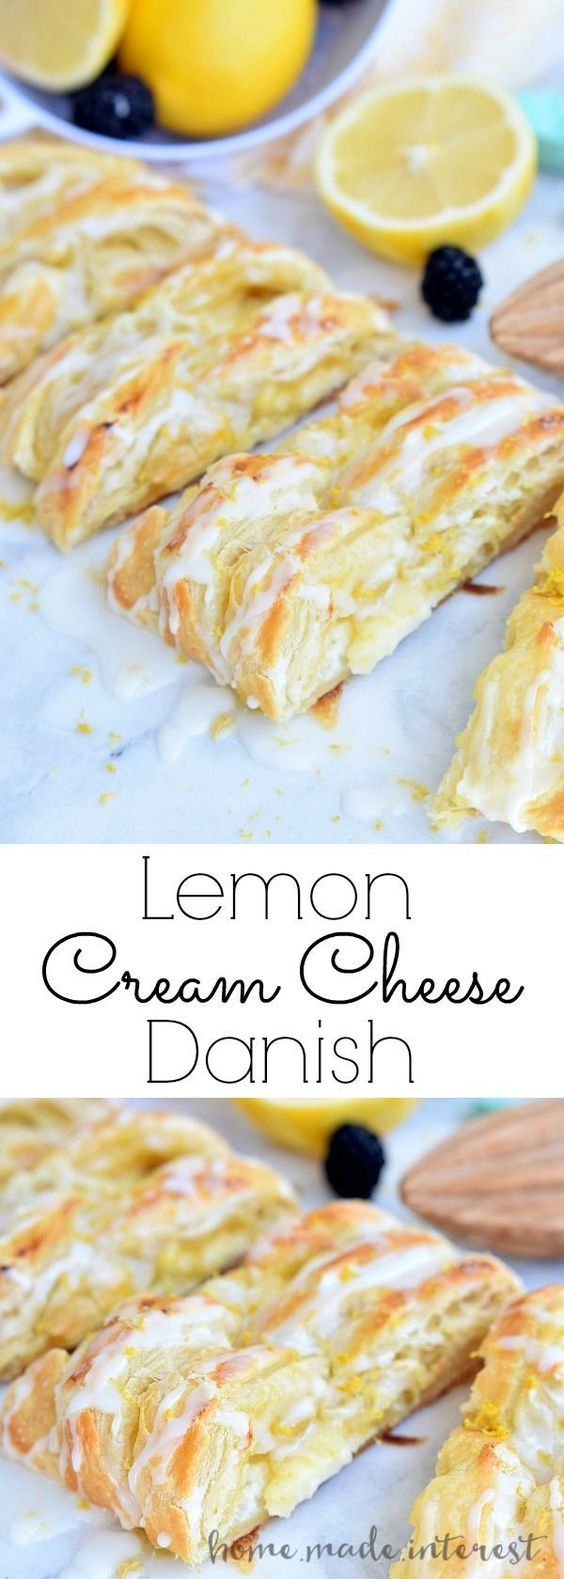 This flaky Lemon Cream Cheese Danish is an easy breakfast or brunch recipe made…